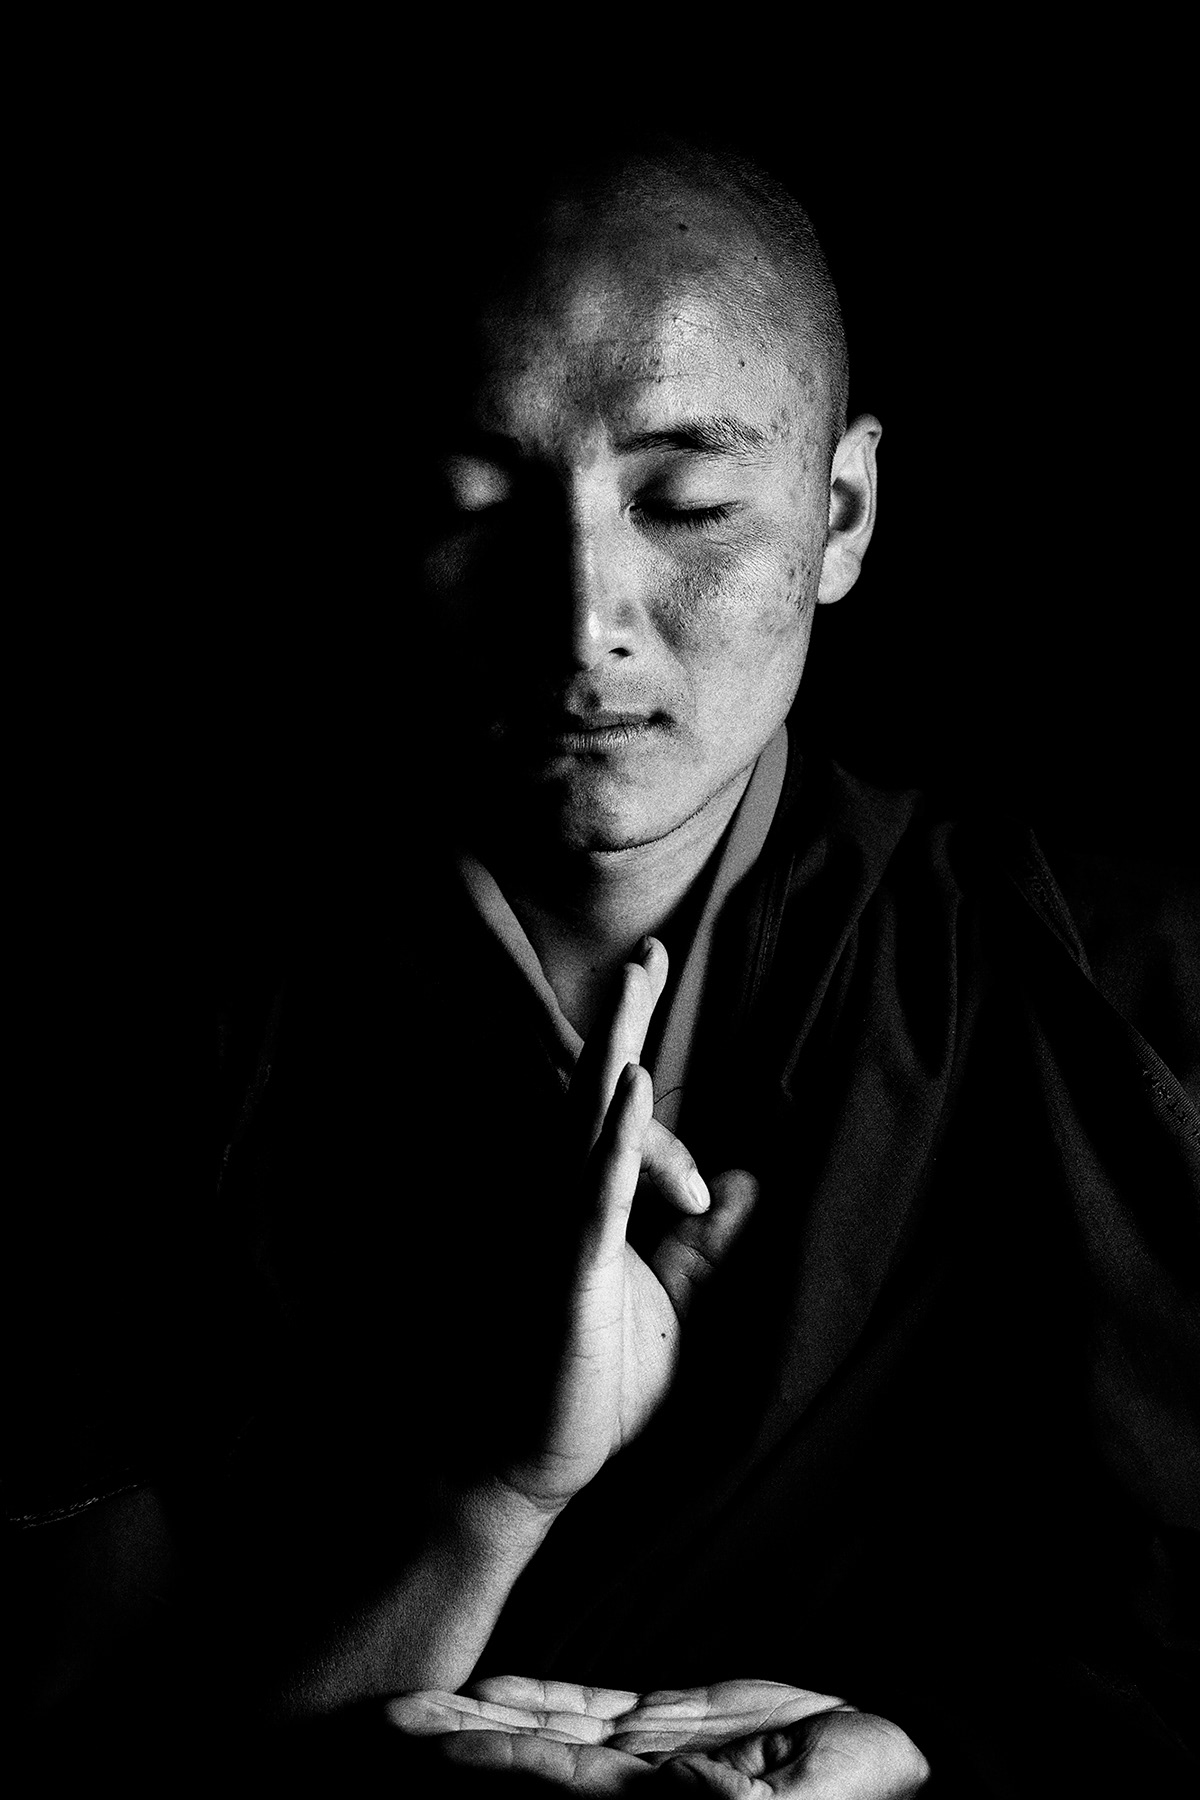 Eyes Closed Portrait of a Bhutanese Monk: Black and White Photography by Jean Tran and Élysée Lang